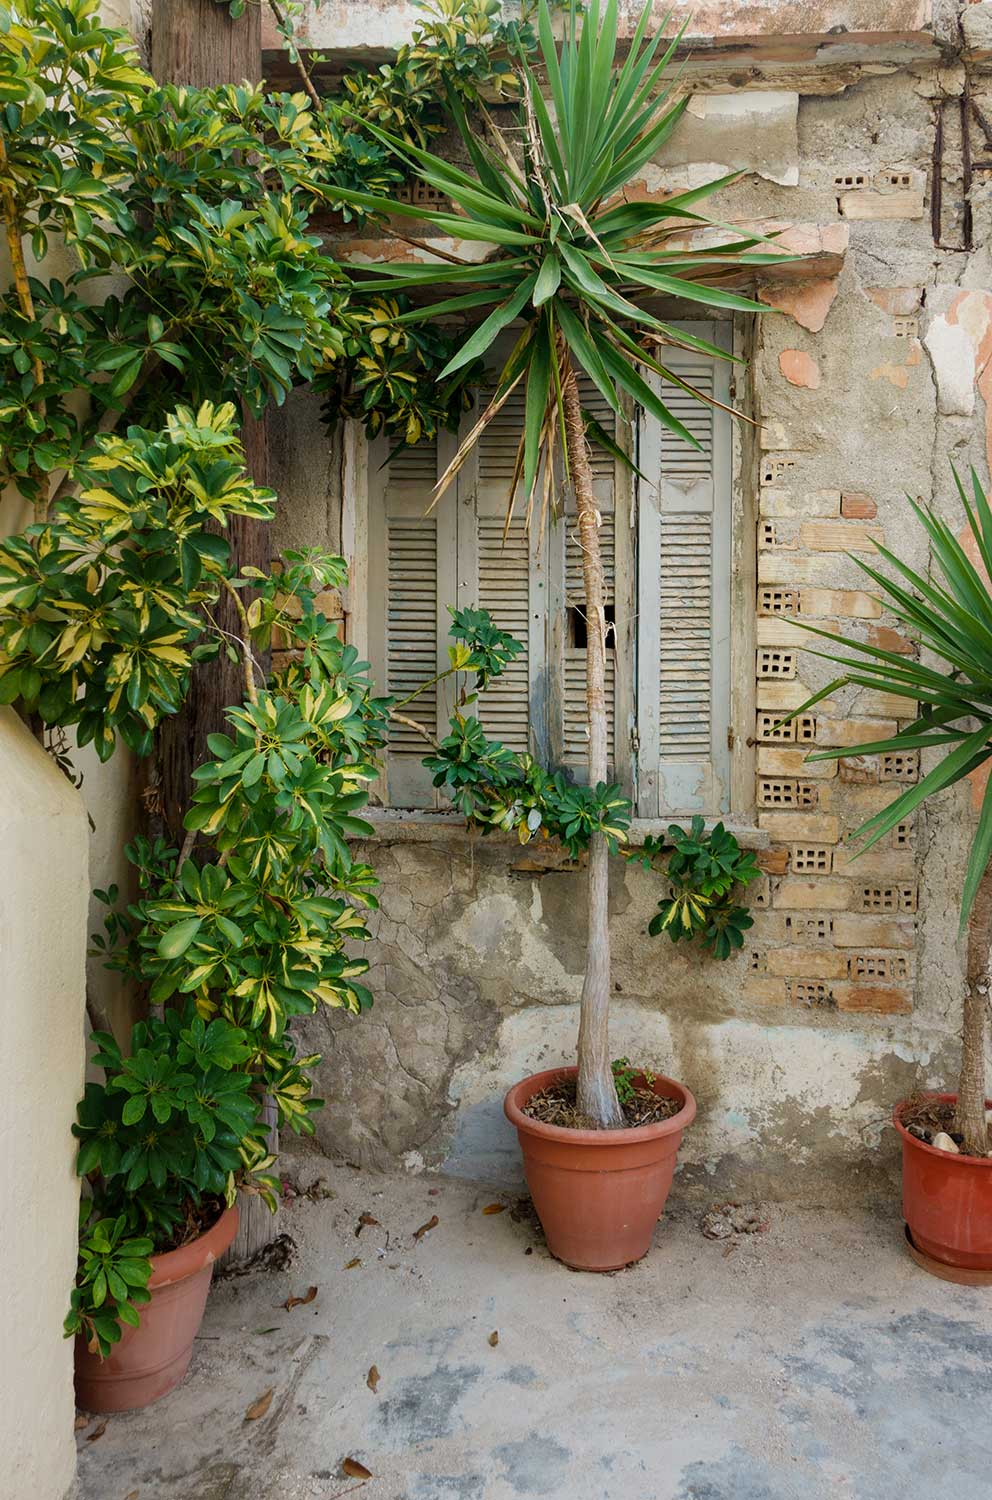 Potted plants in front of ruined wall